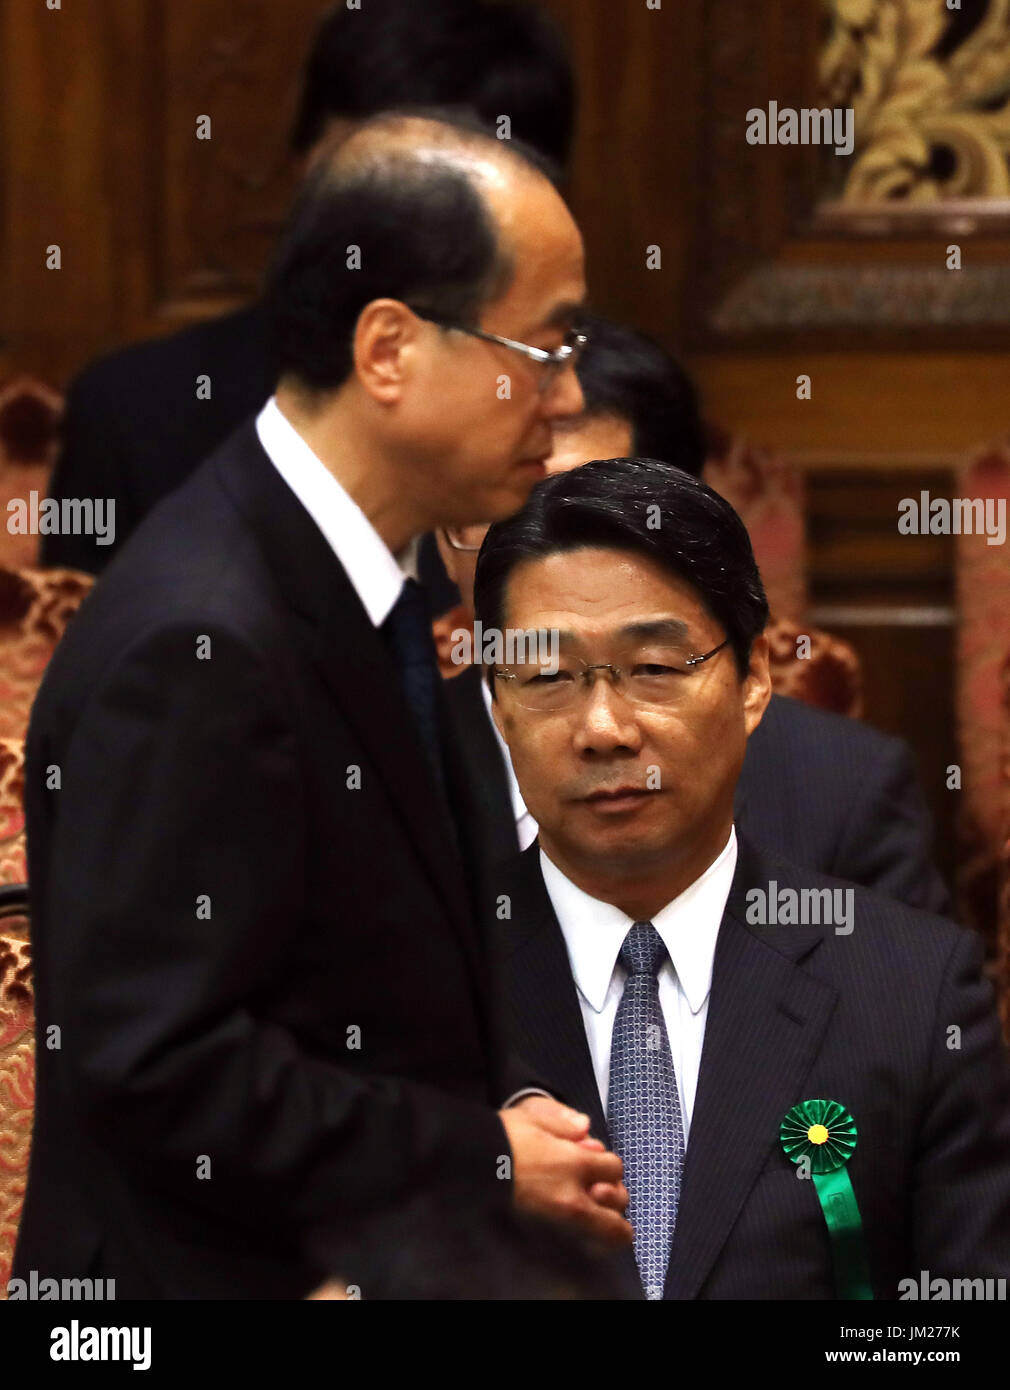 Tokyo, Japan. 25th July, 2017. Japanese Prime Minister's special advisor Hiroto Izumi (L) passes before former vice Education Miniater Kihei Maekawa at Upper House's budget committee session at the National Diet in Tokyo on Tuesday, July 25, 2017. Abe said he was not asked by his friend Kotaro Kake for help in opening a new university department in Imabari. Credit: Yoshio Tsunoda/AFLO/Alamy Live News - Stock Image